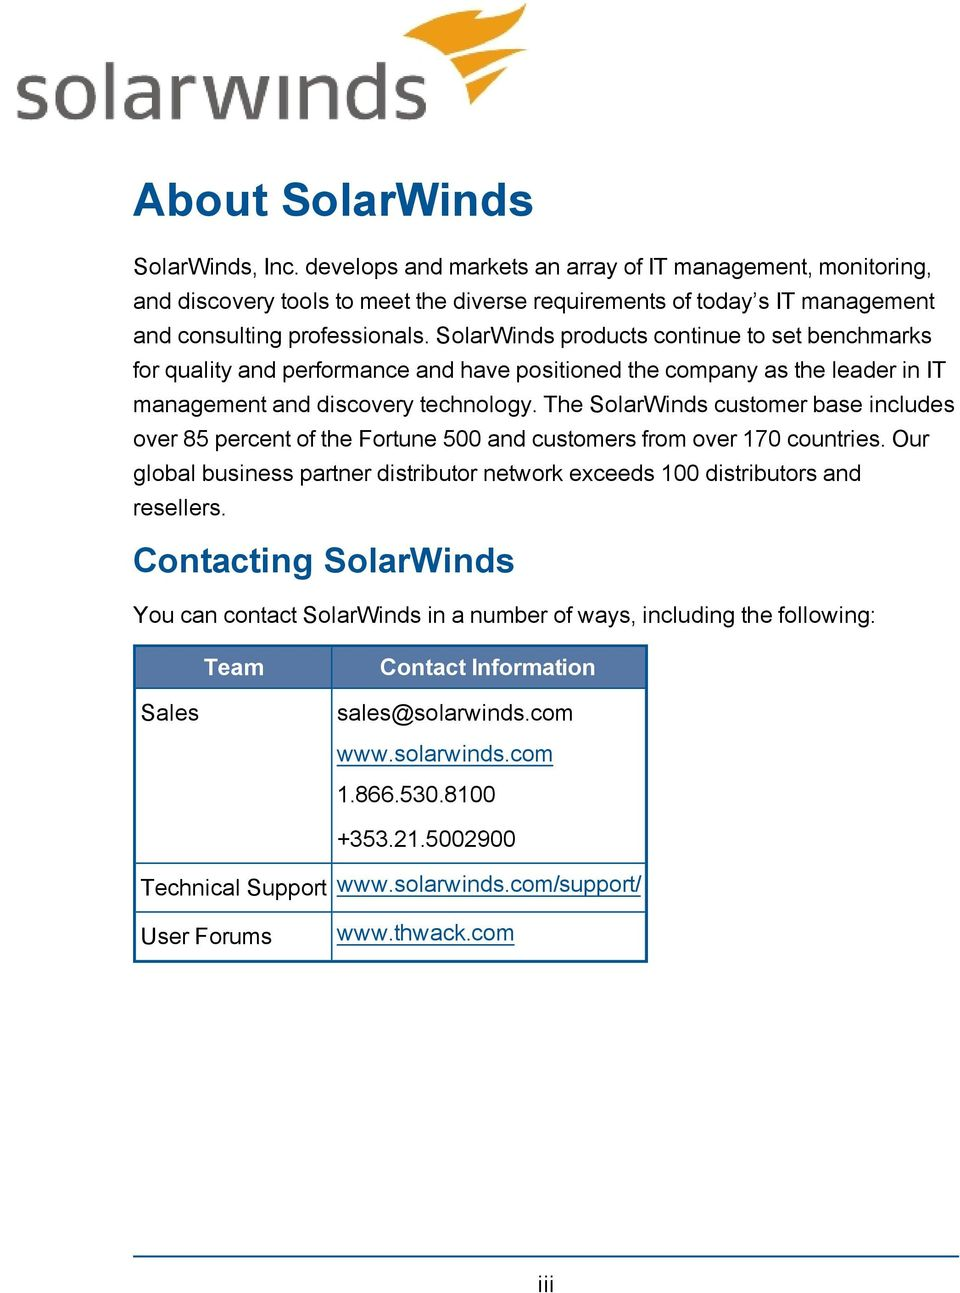 SolarWinds products continue to set benchmarks for quality and performance and have positioned the company as the leader in IT management and discovery technology.